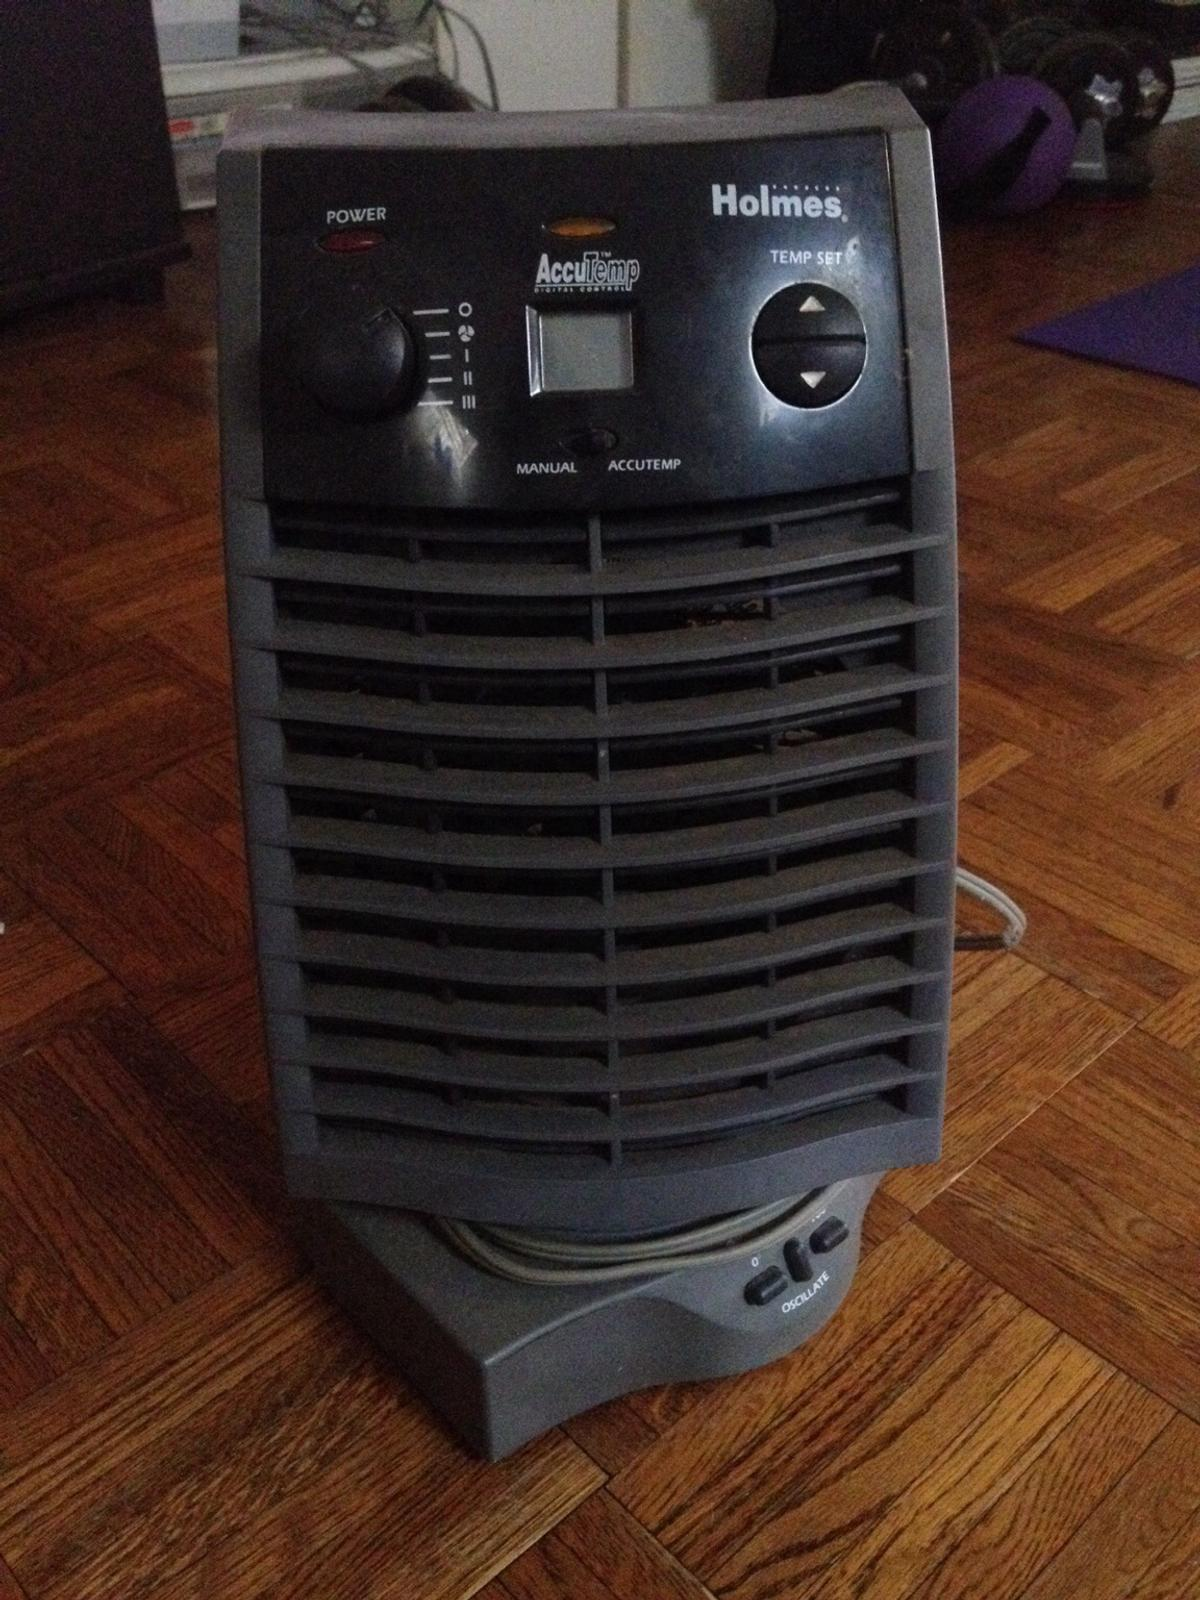 holmes portable heater